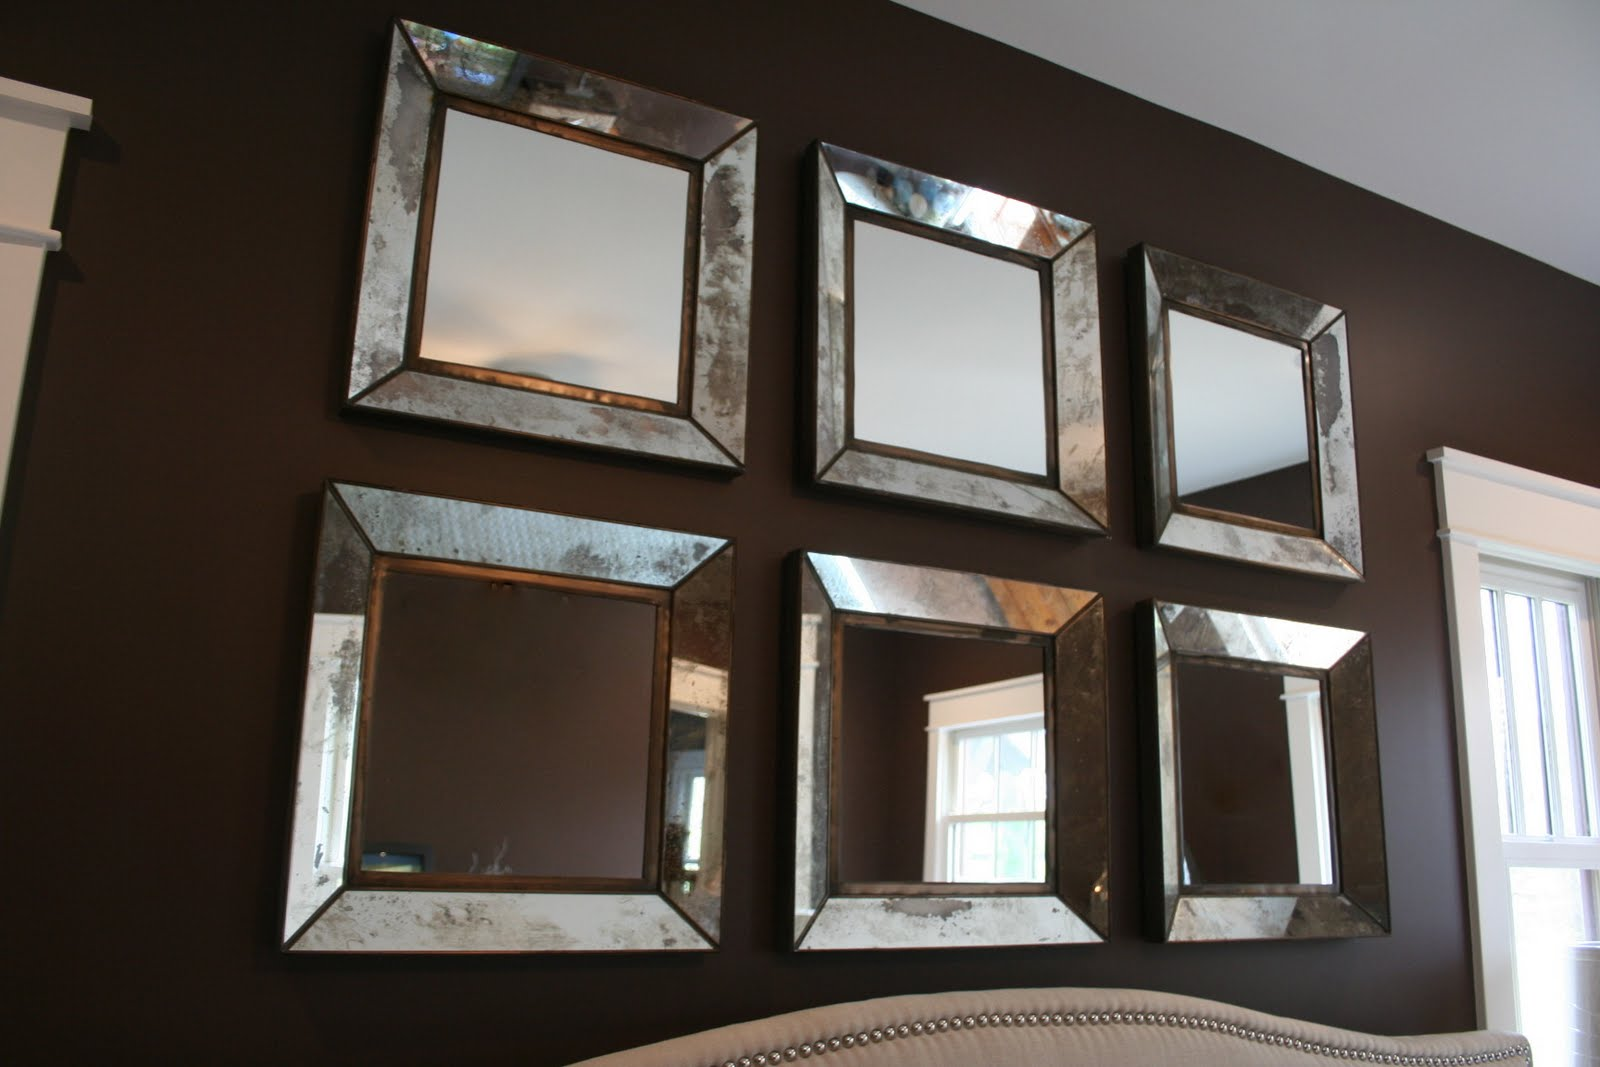 Crate and Barrel Mirrors | Mirrored Frame Wall Art | Dressing Mirrors Full Length